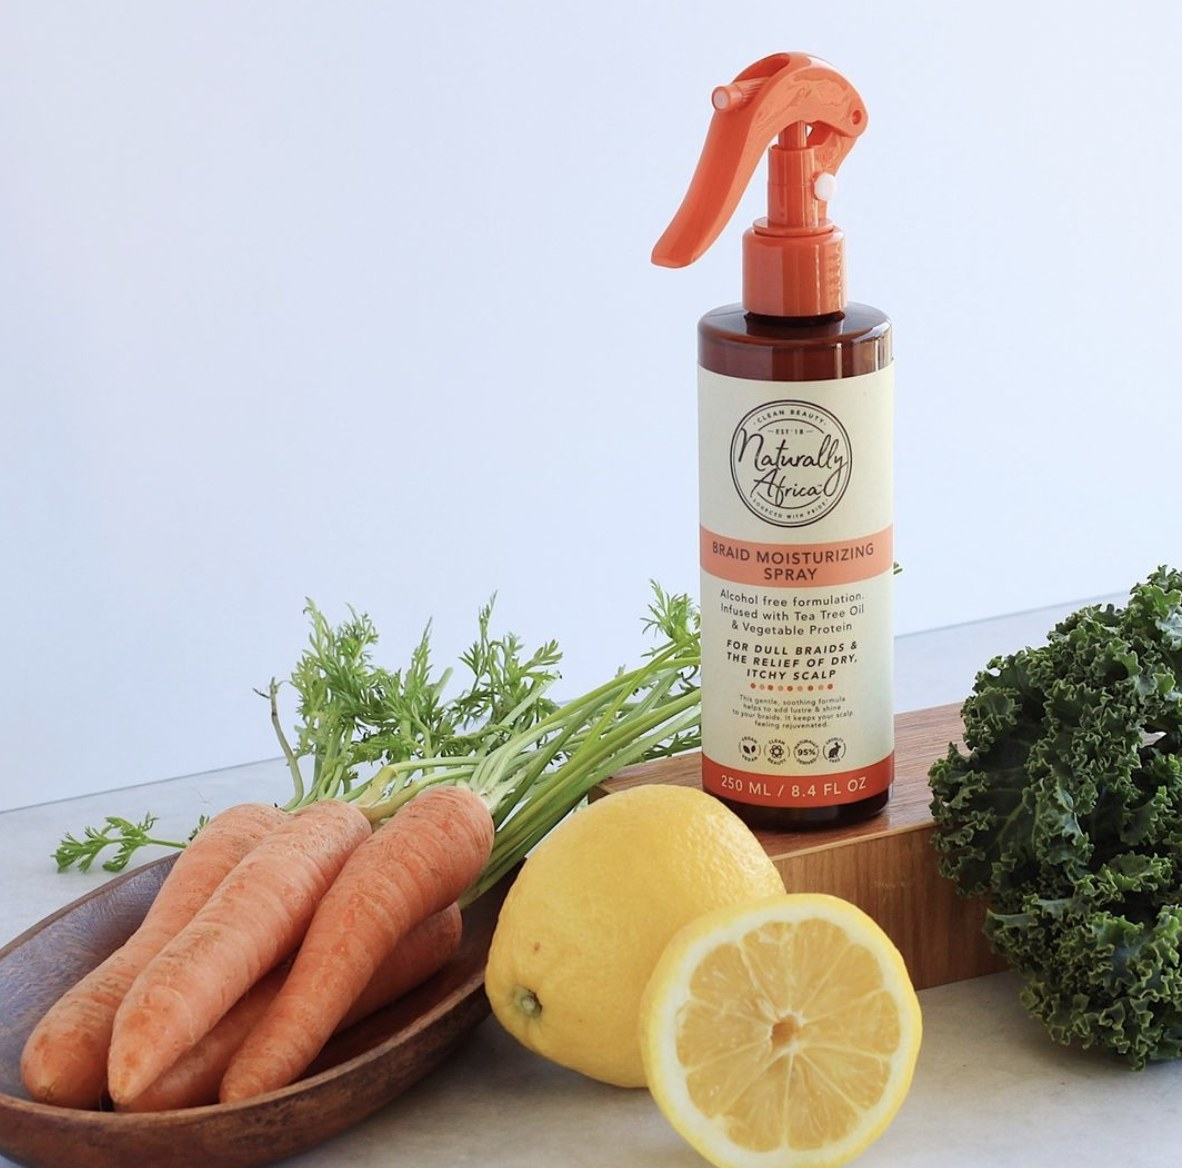 A bottle of braid spray with cut lemons and carrots